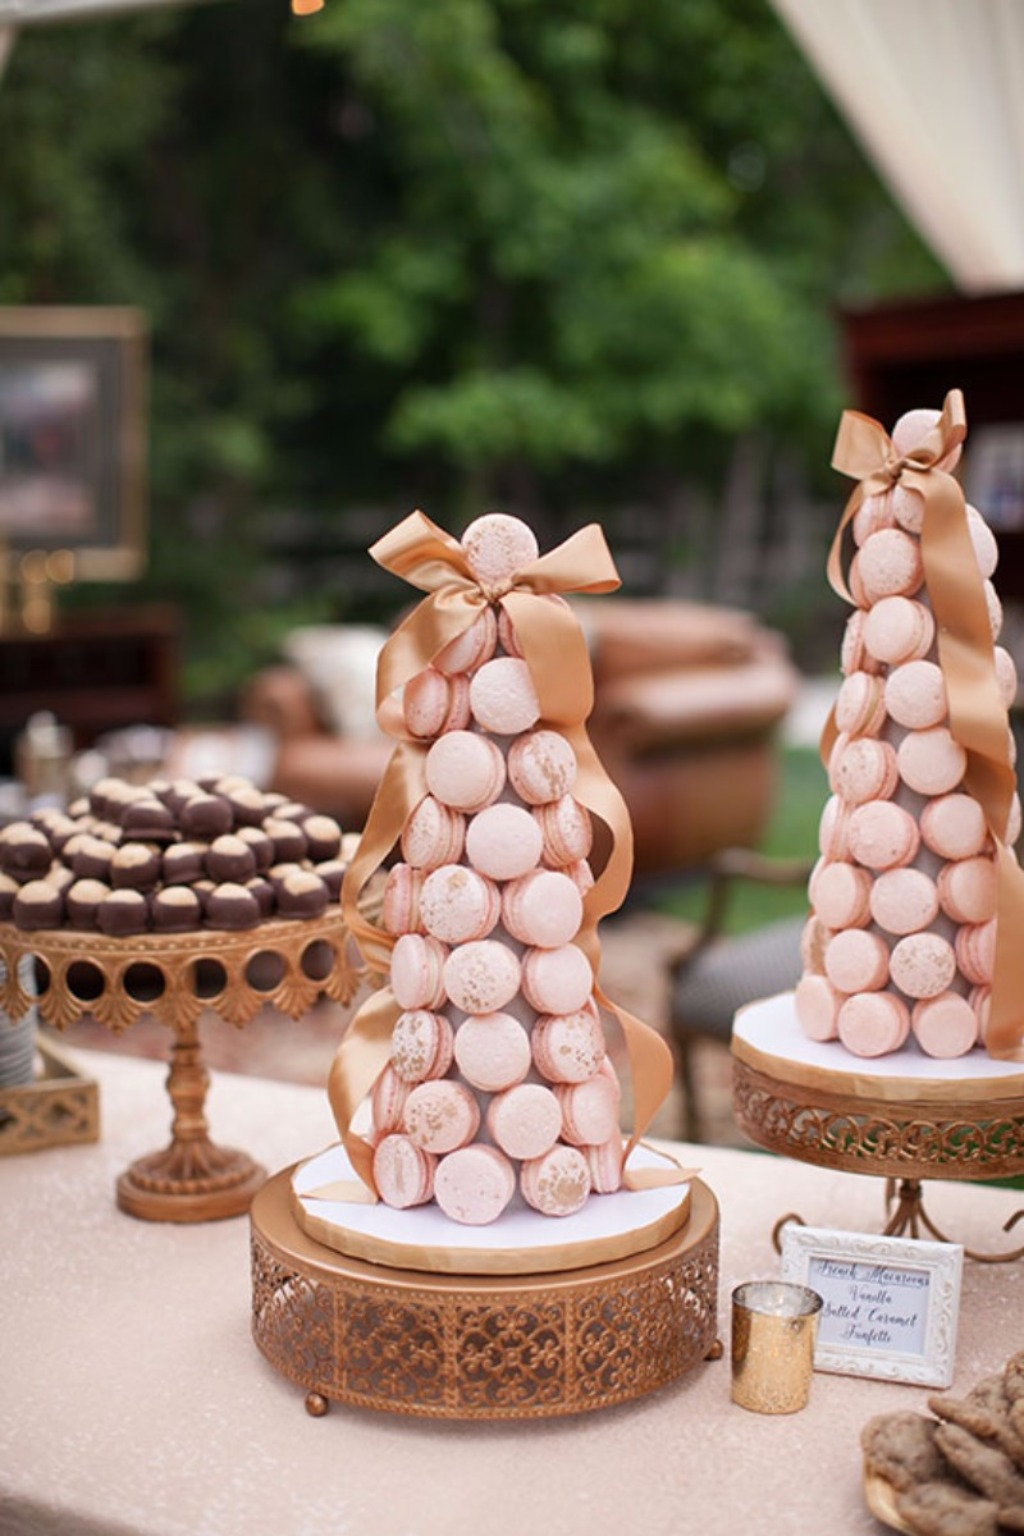 Macaron Towers on Opulent Treasures Antique Gold Wedding Cake Stands